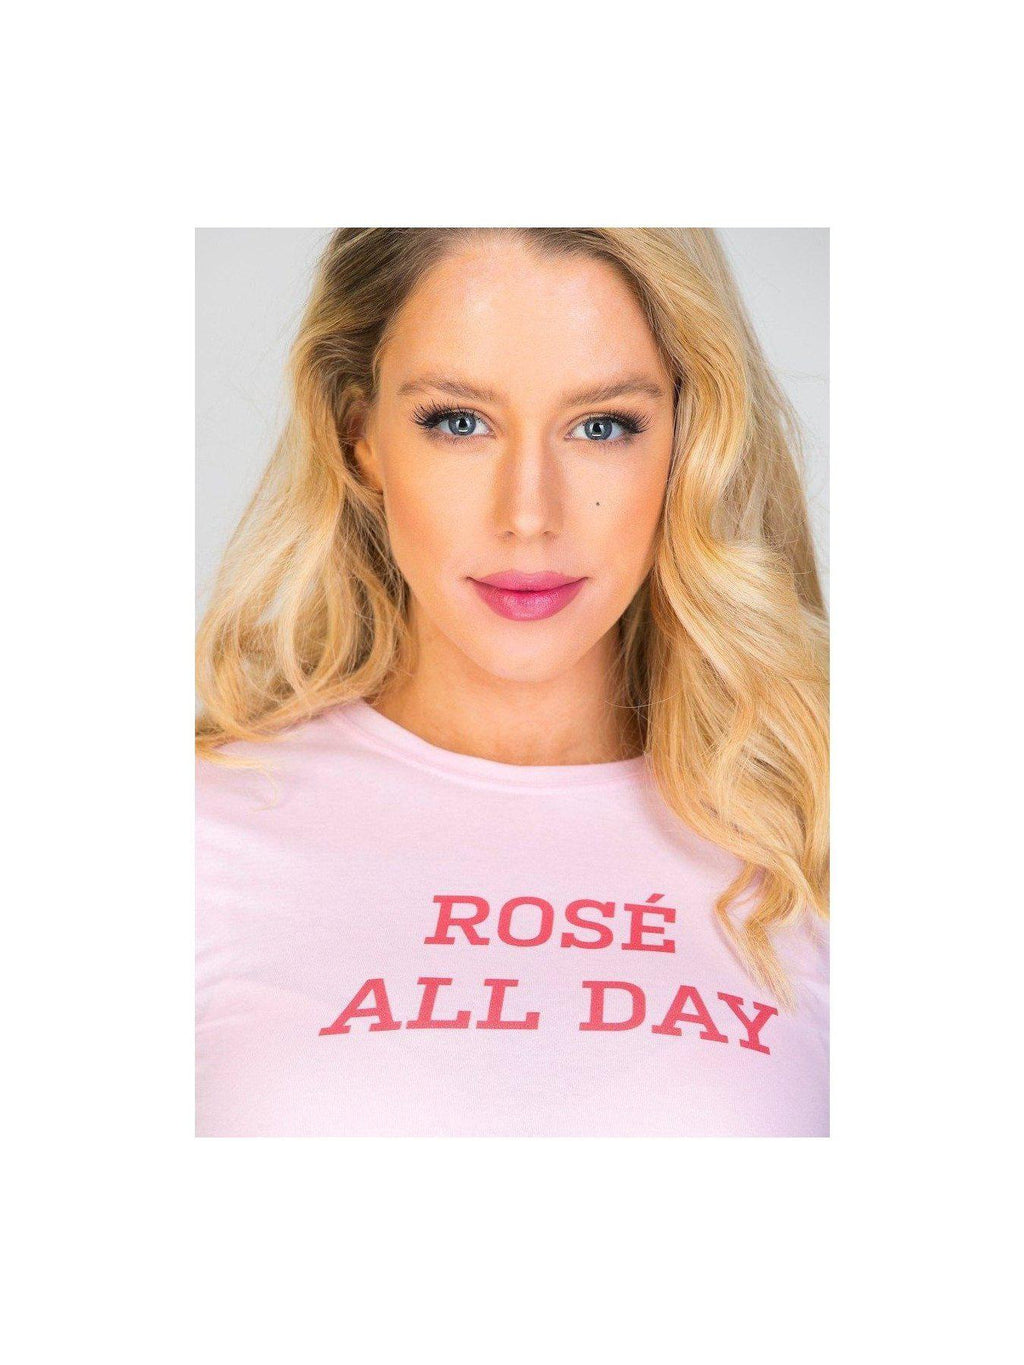 ROSÉ ALL DAY t shirt